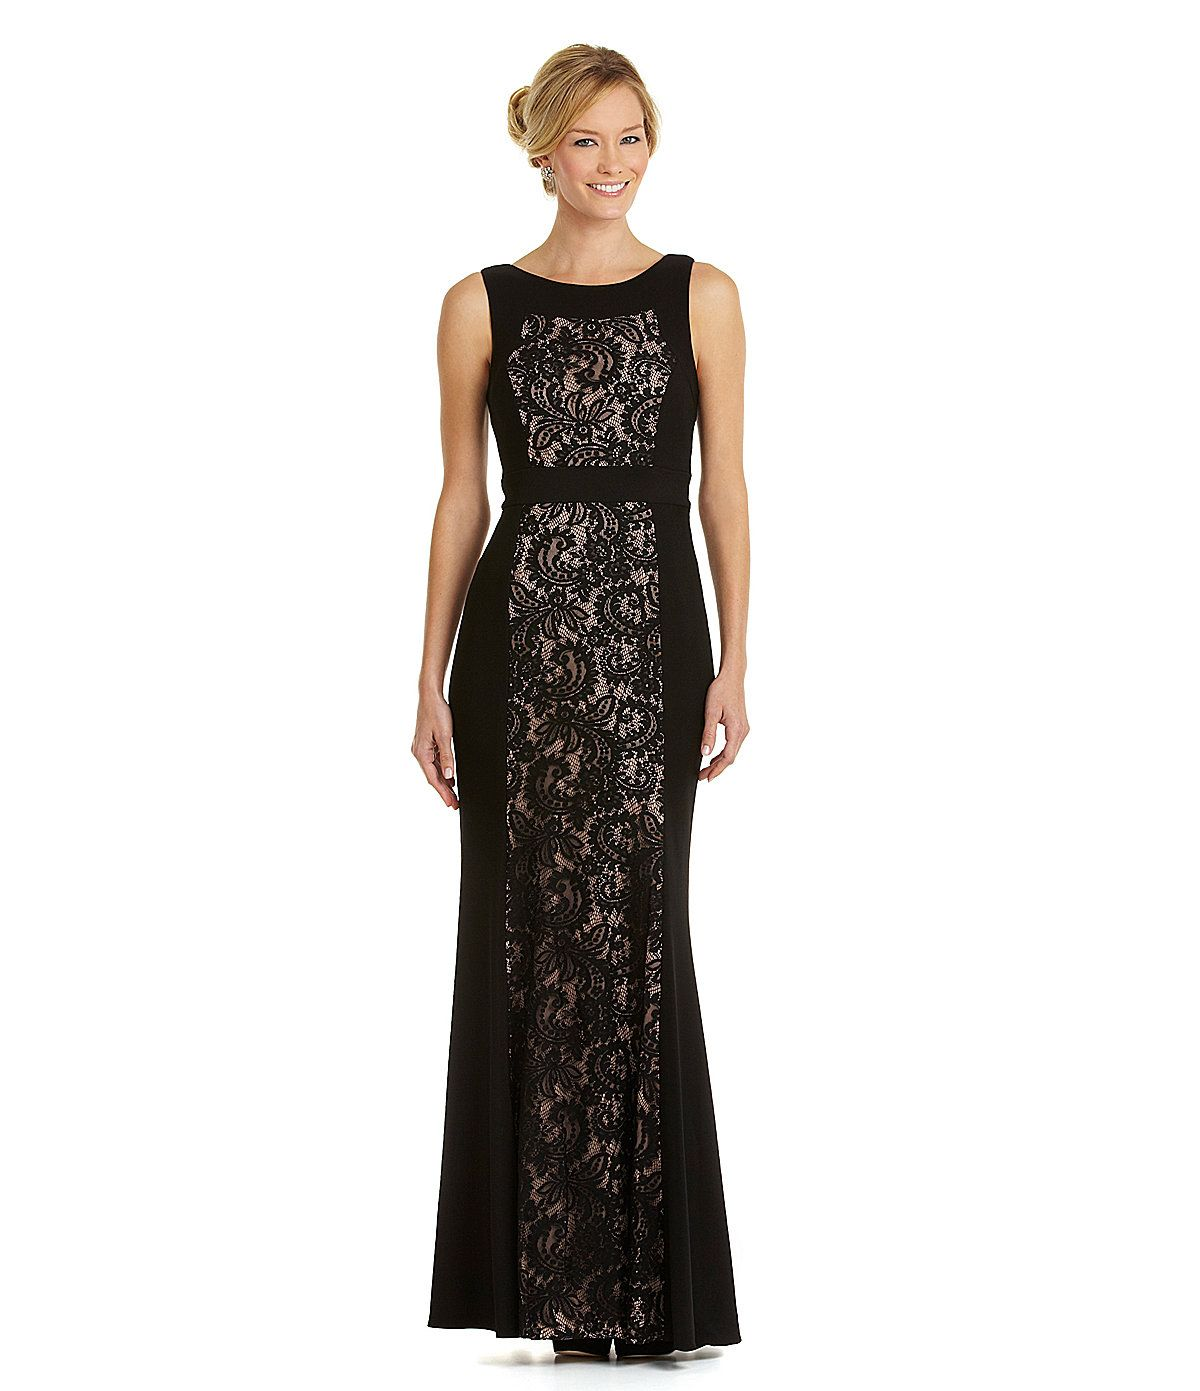 Mog dress js collections lace panel gown dillards wedding